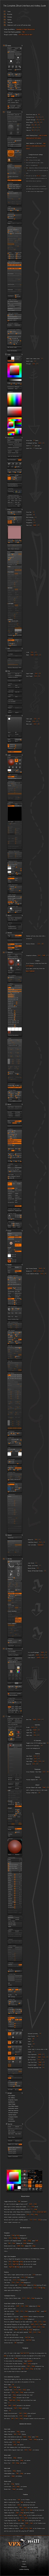 The Complete Zbrush Interface and Hotkeys Guide by vfxmill – zbrushtuts